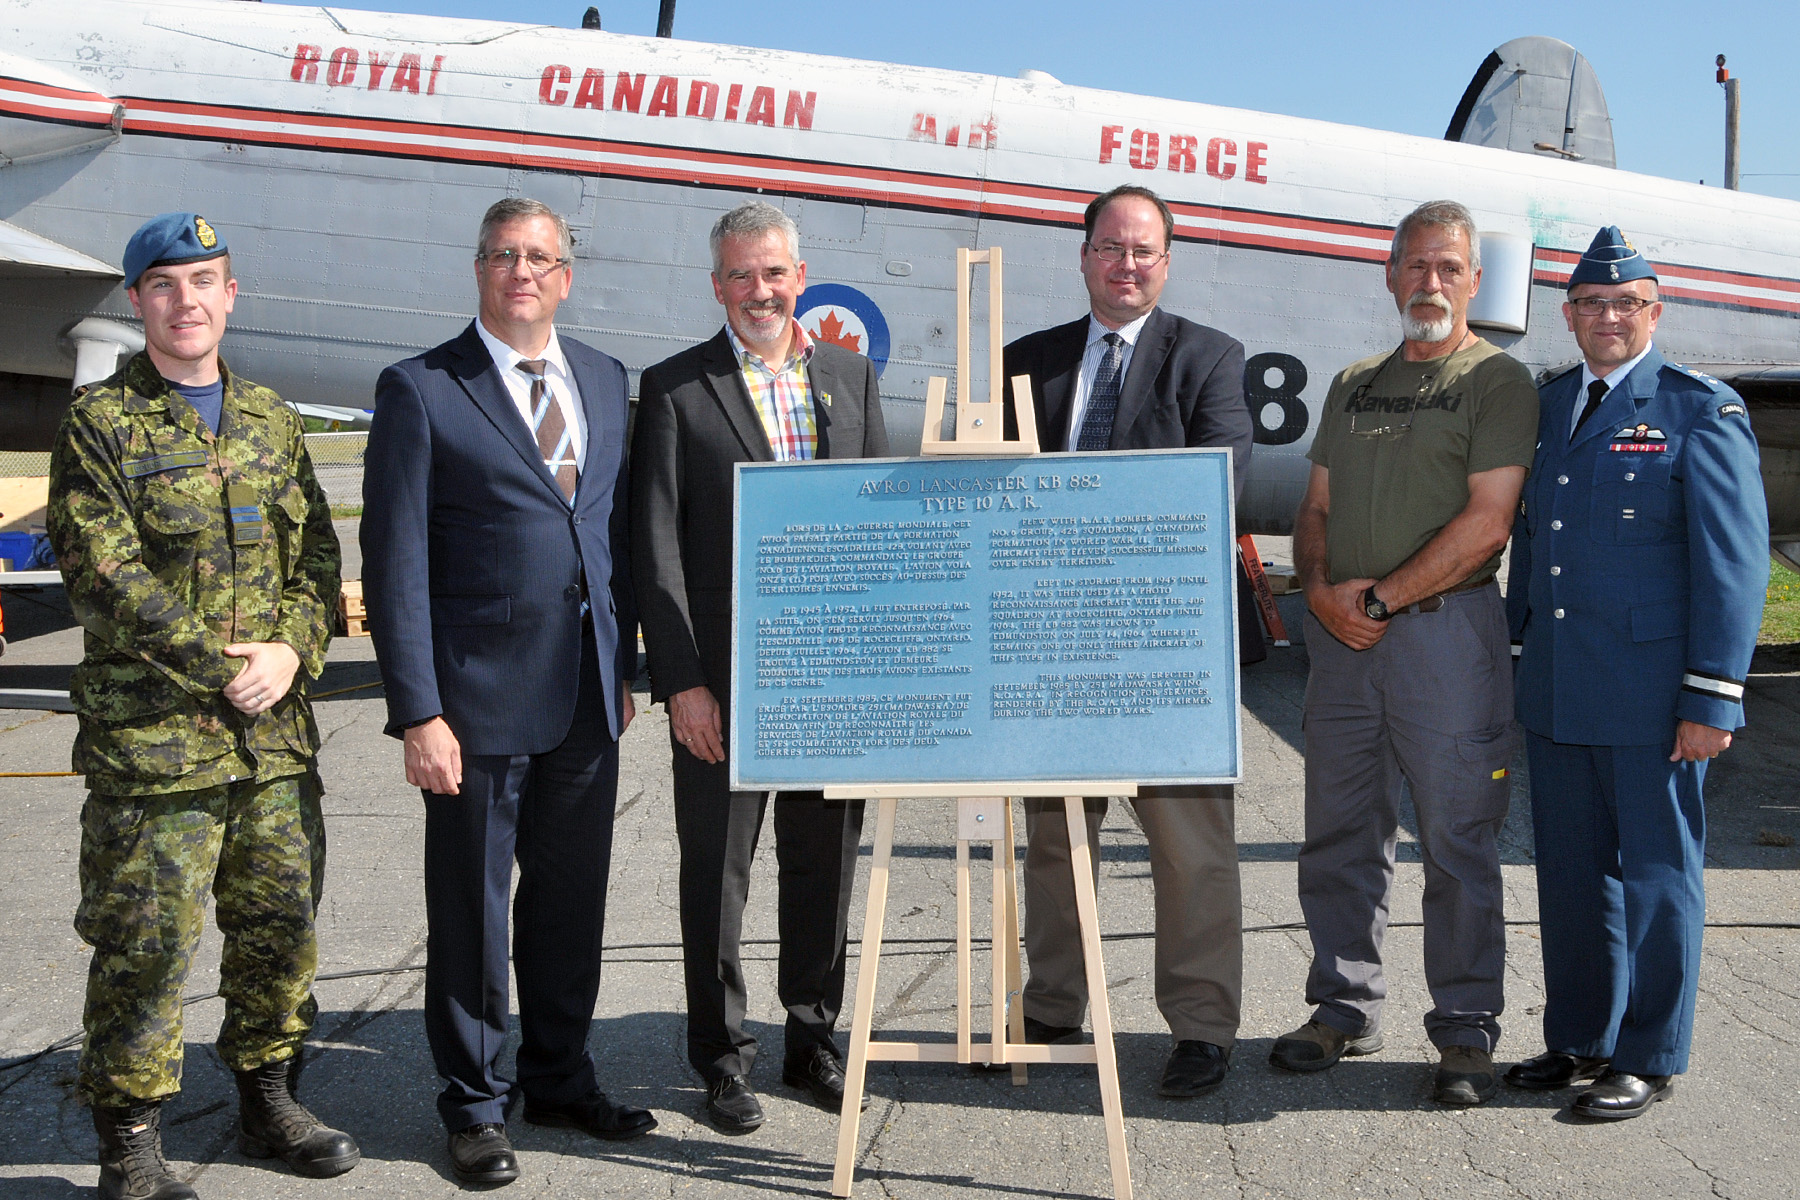 Gathered around the plaque presented by the Edmundston mayor to the National Air Force Museum are (from left) Captain Jamie Boudreau of ATESS, heading the team dismantling KB882; Kevin Windsor, museum curator; Mayor Cyrille Simard; Dr. Richard Mayne, the RCAF's chief historian; Mike Joly, head of the restoration shop at the museum; and Brigadier-General Scott Howden of the RCAF. PHOTO: Warrant Officer Fran Gaudet